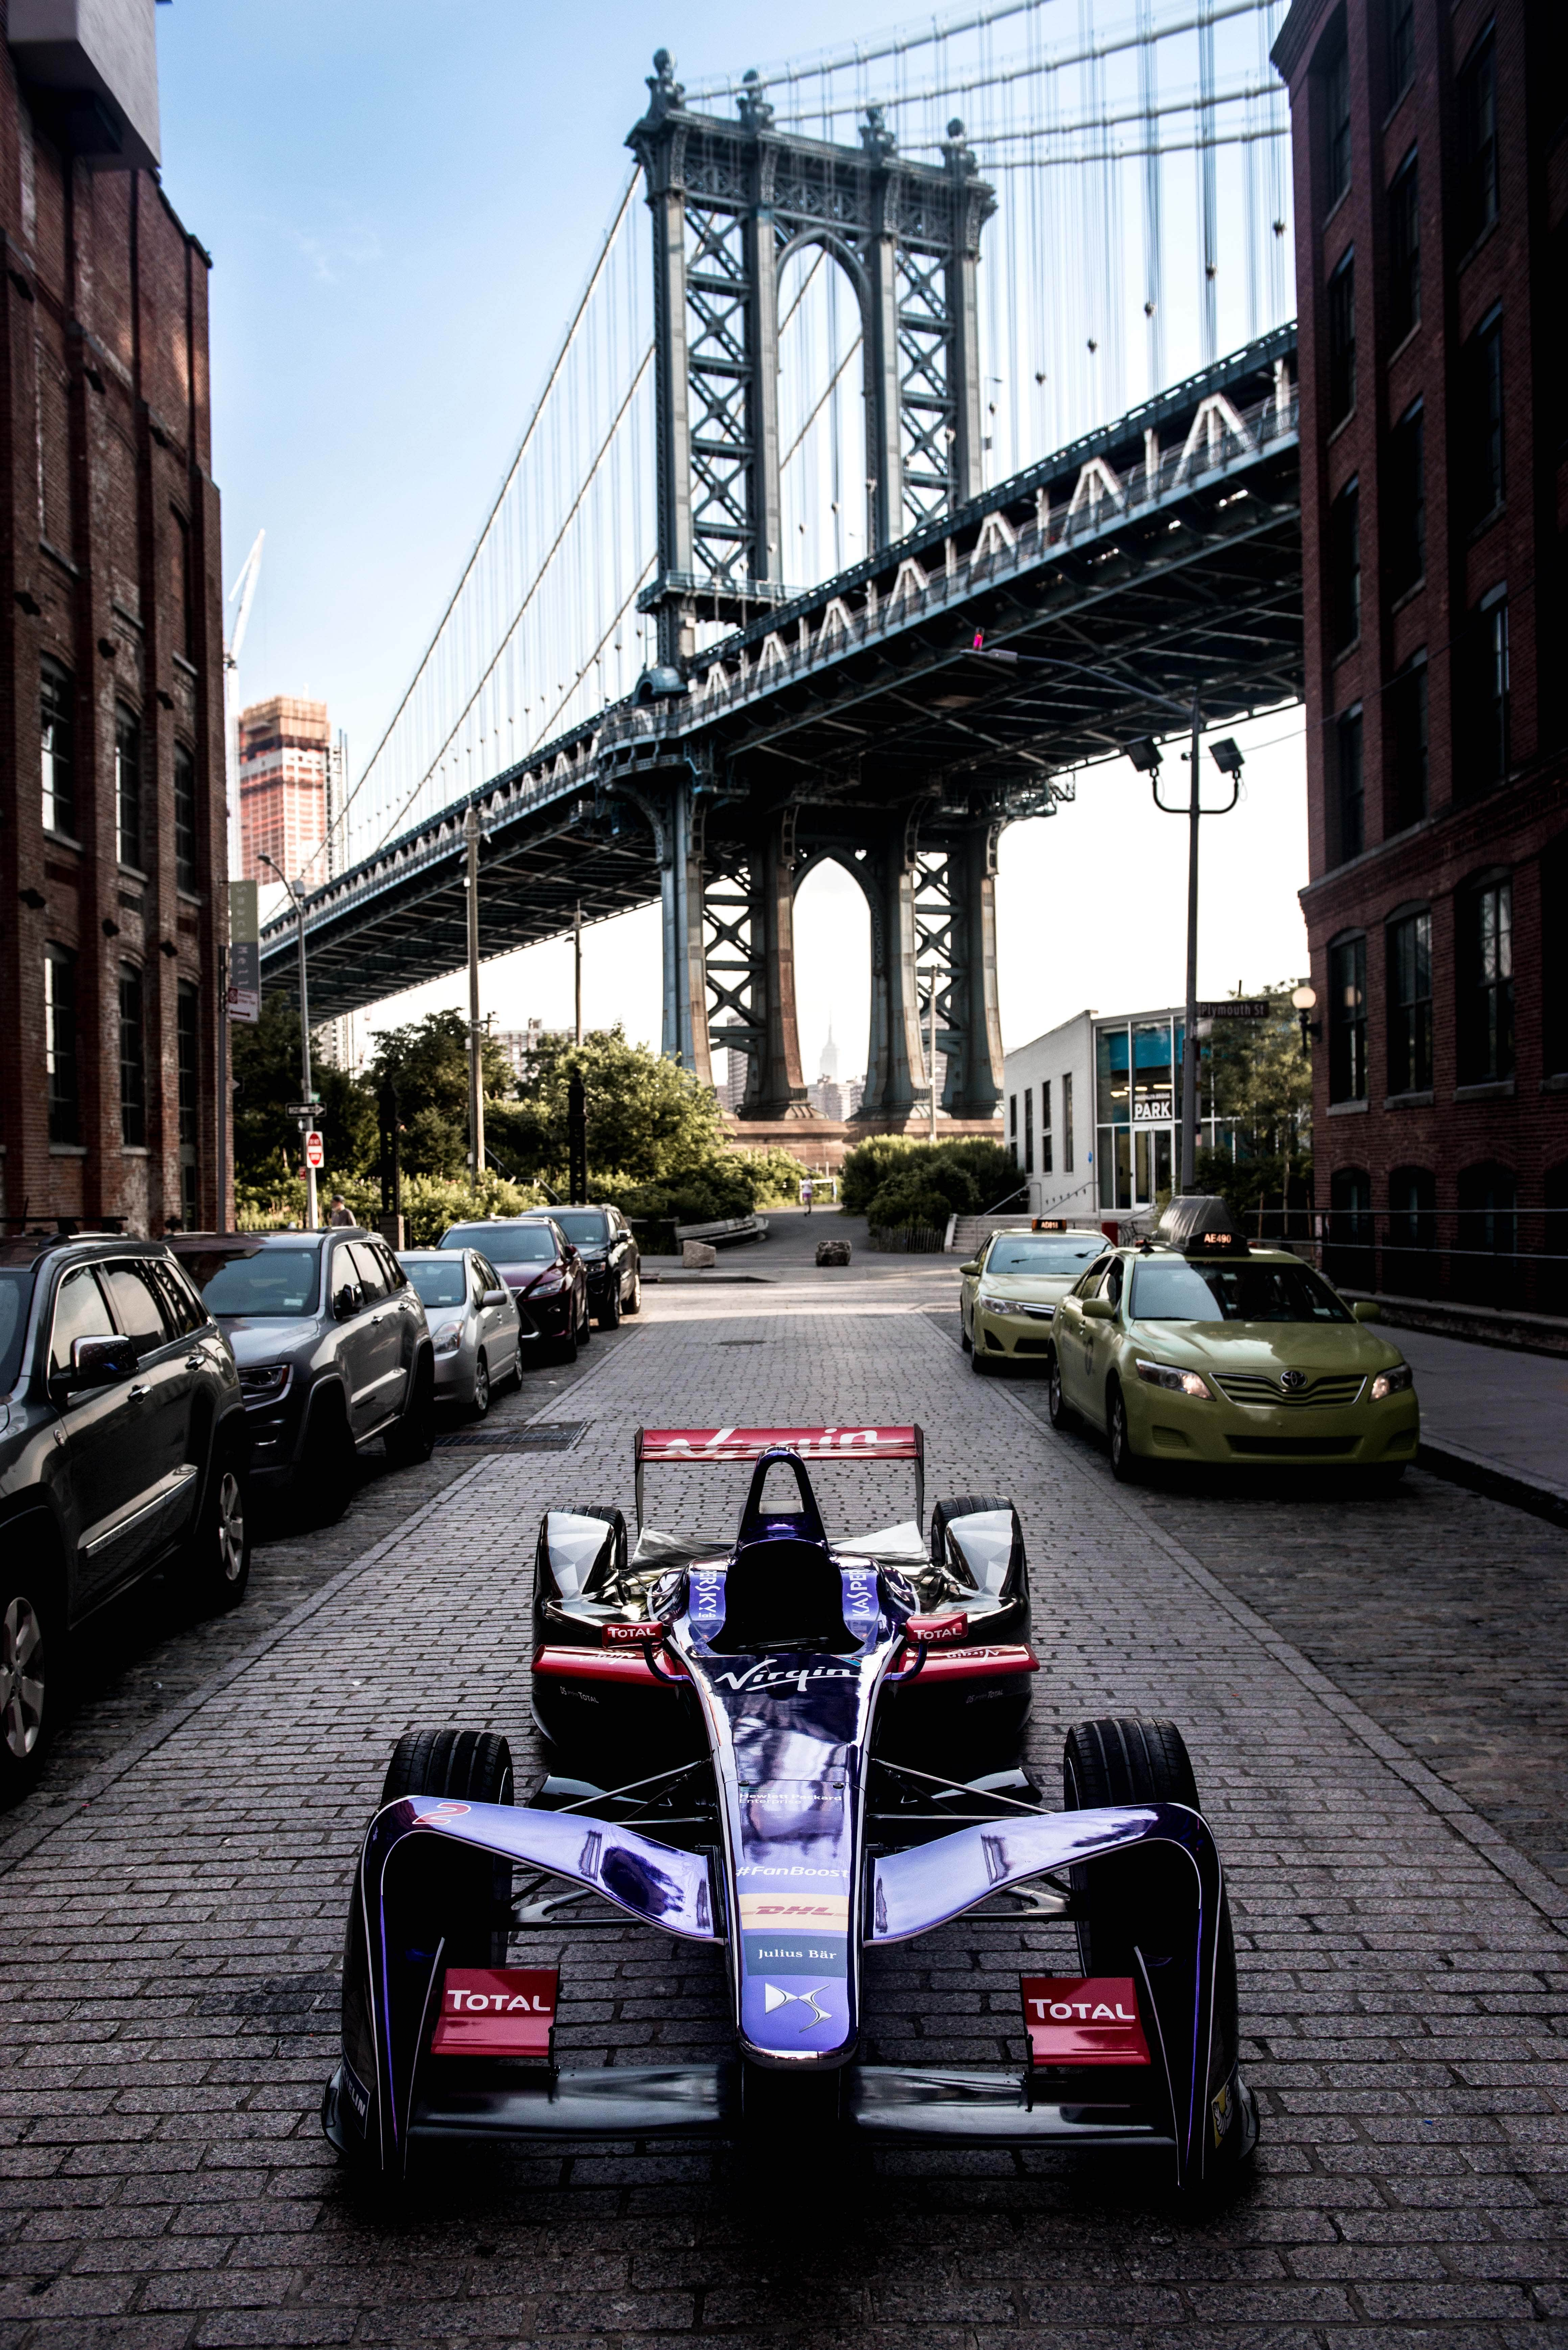 spacesuit-media-nat-twiss-ny-eprix-5062